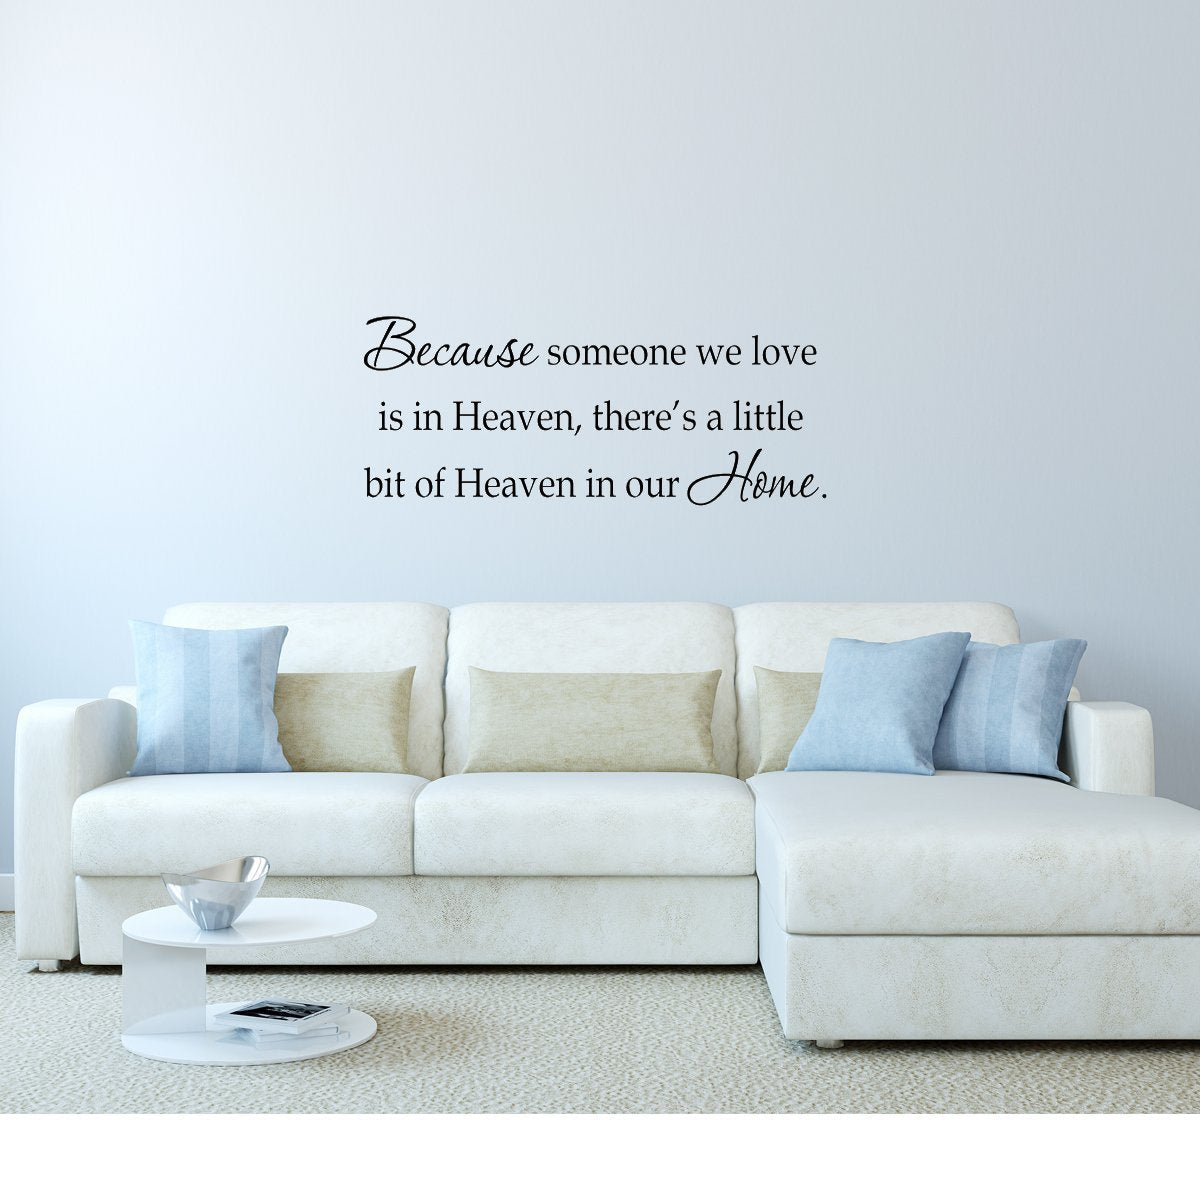 Because Someone We Love Is In Heaven Vinyl Wall Quotes Decal - VWAQ Vinyl Wall Art Quotes and Prints